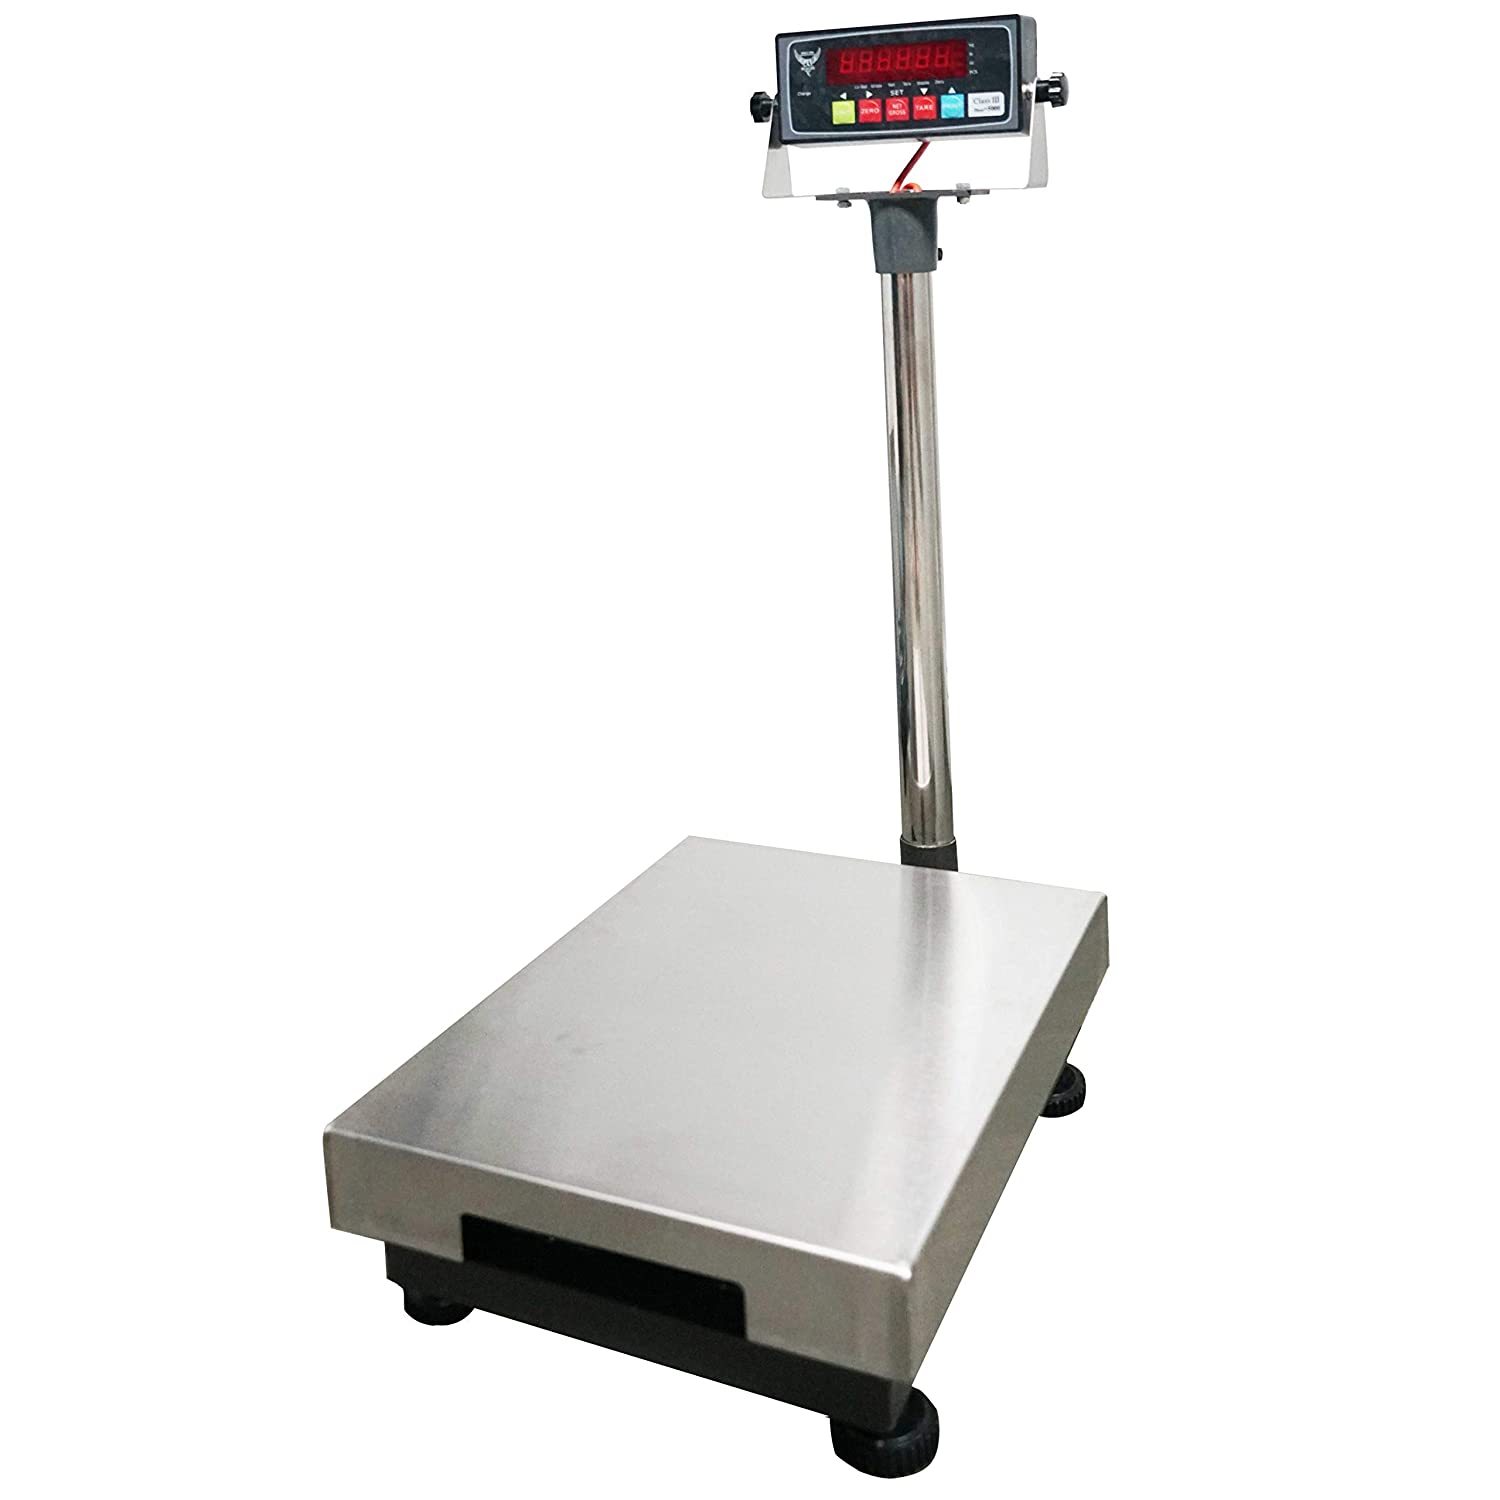 PEC Scales Stainless Steel Bench Weigh Jacksonville Mall Scale Digital Commercial New product type